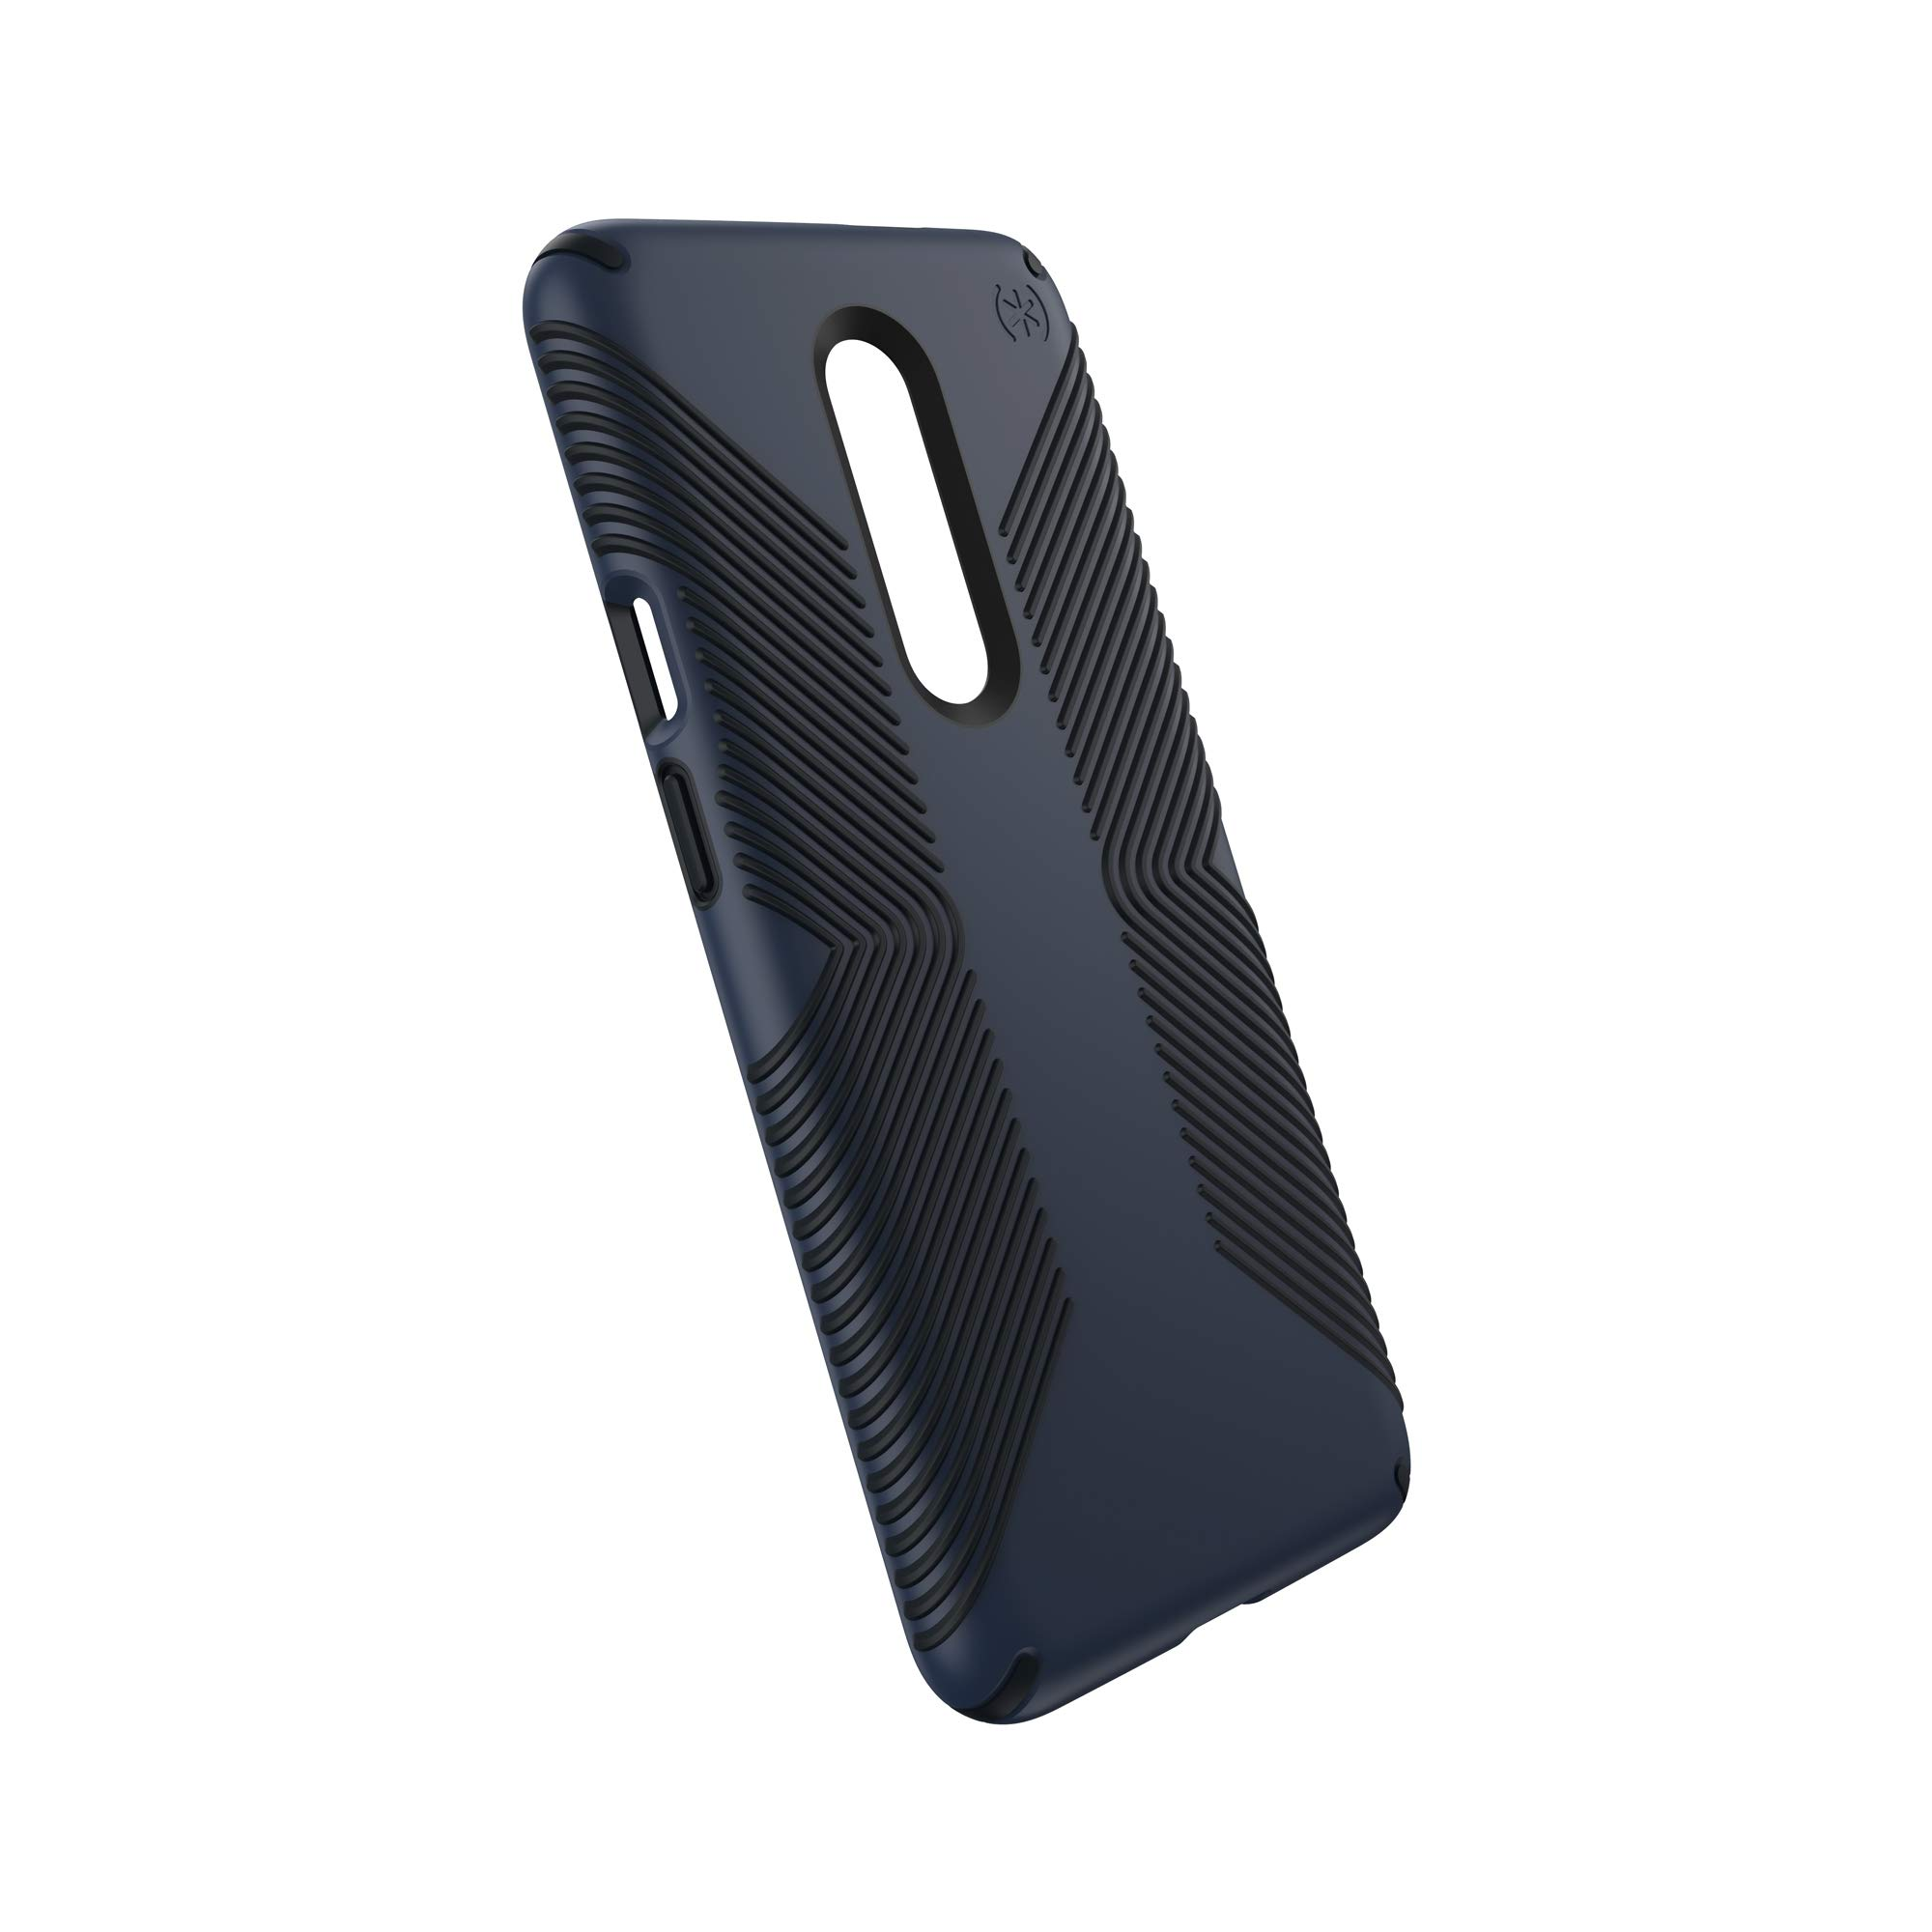 Speck Products Presidio Grip OnePlus Case, Eclipse Blue/Carbon Black by Speck